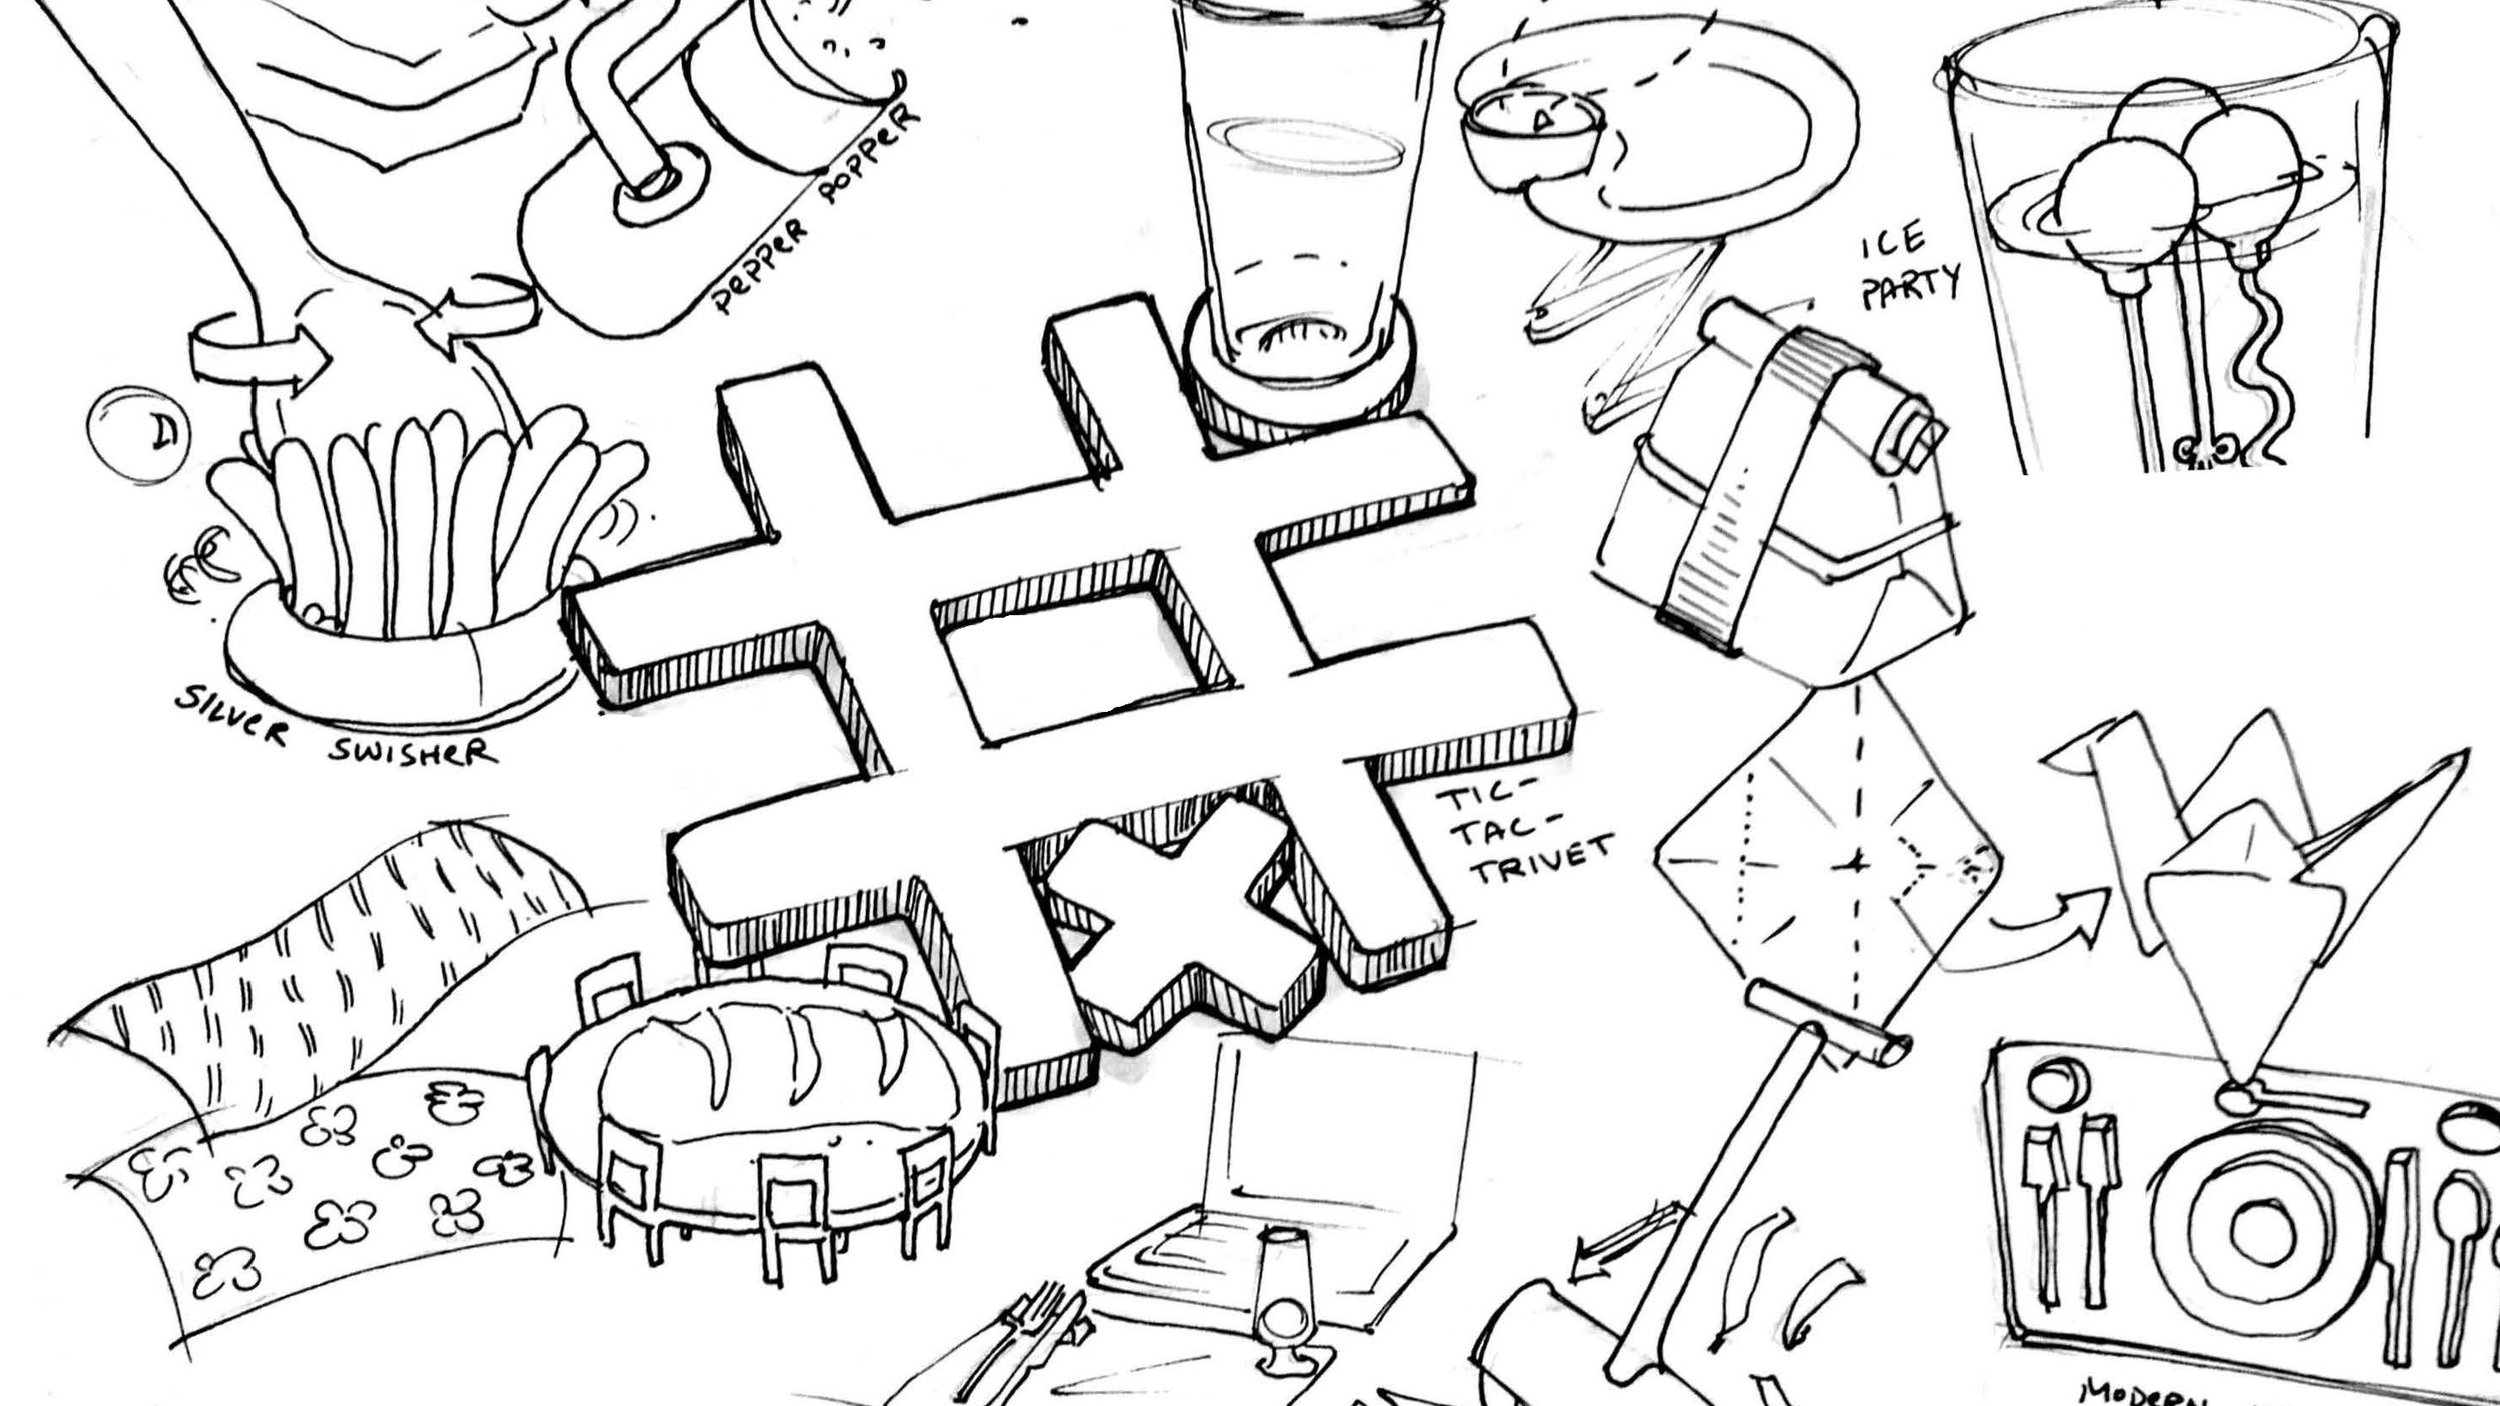 Forney_MoMA_TicTacTrivet_ideation